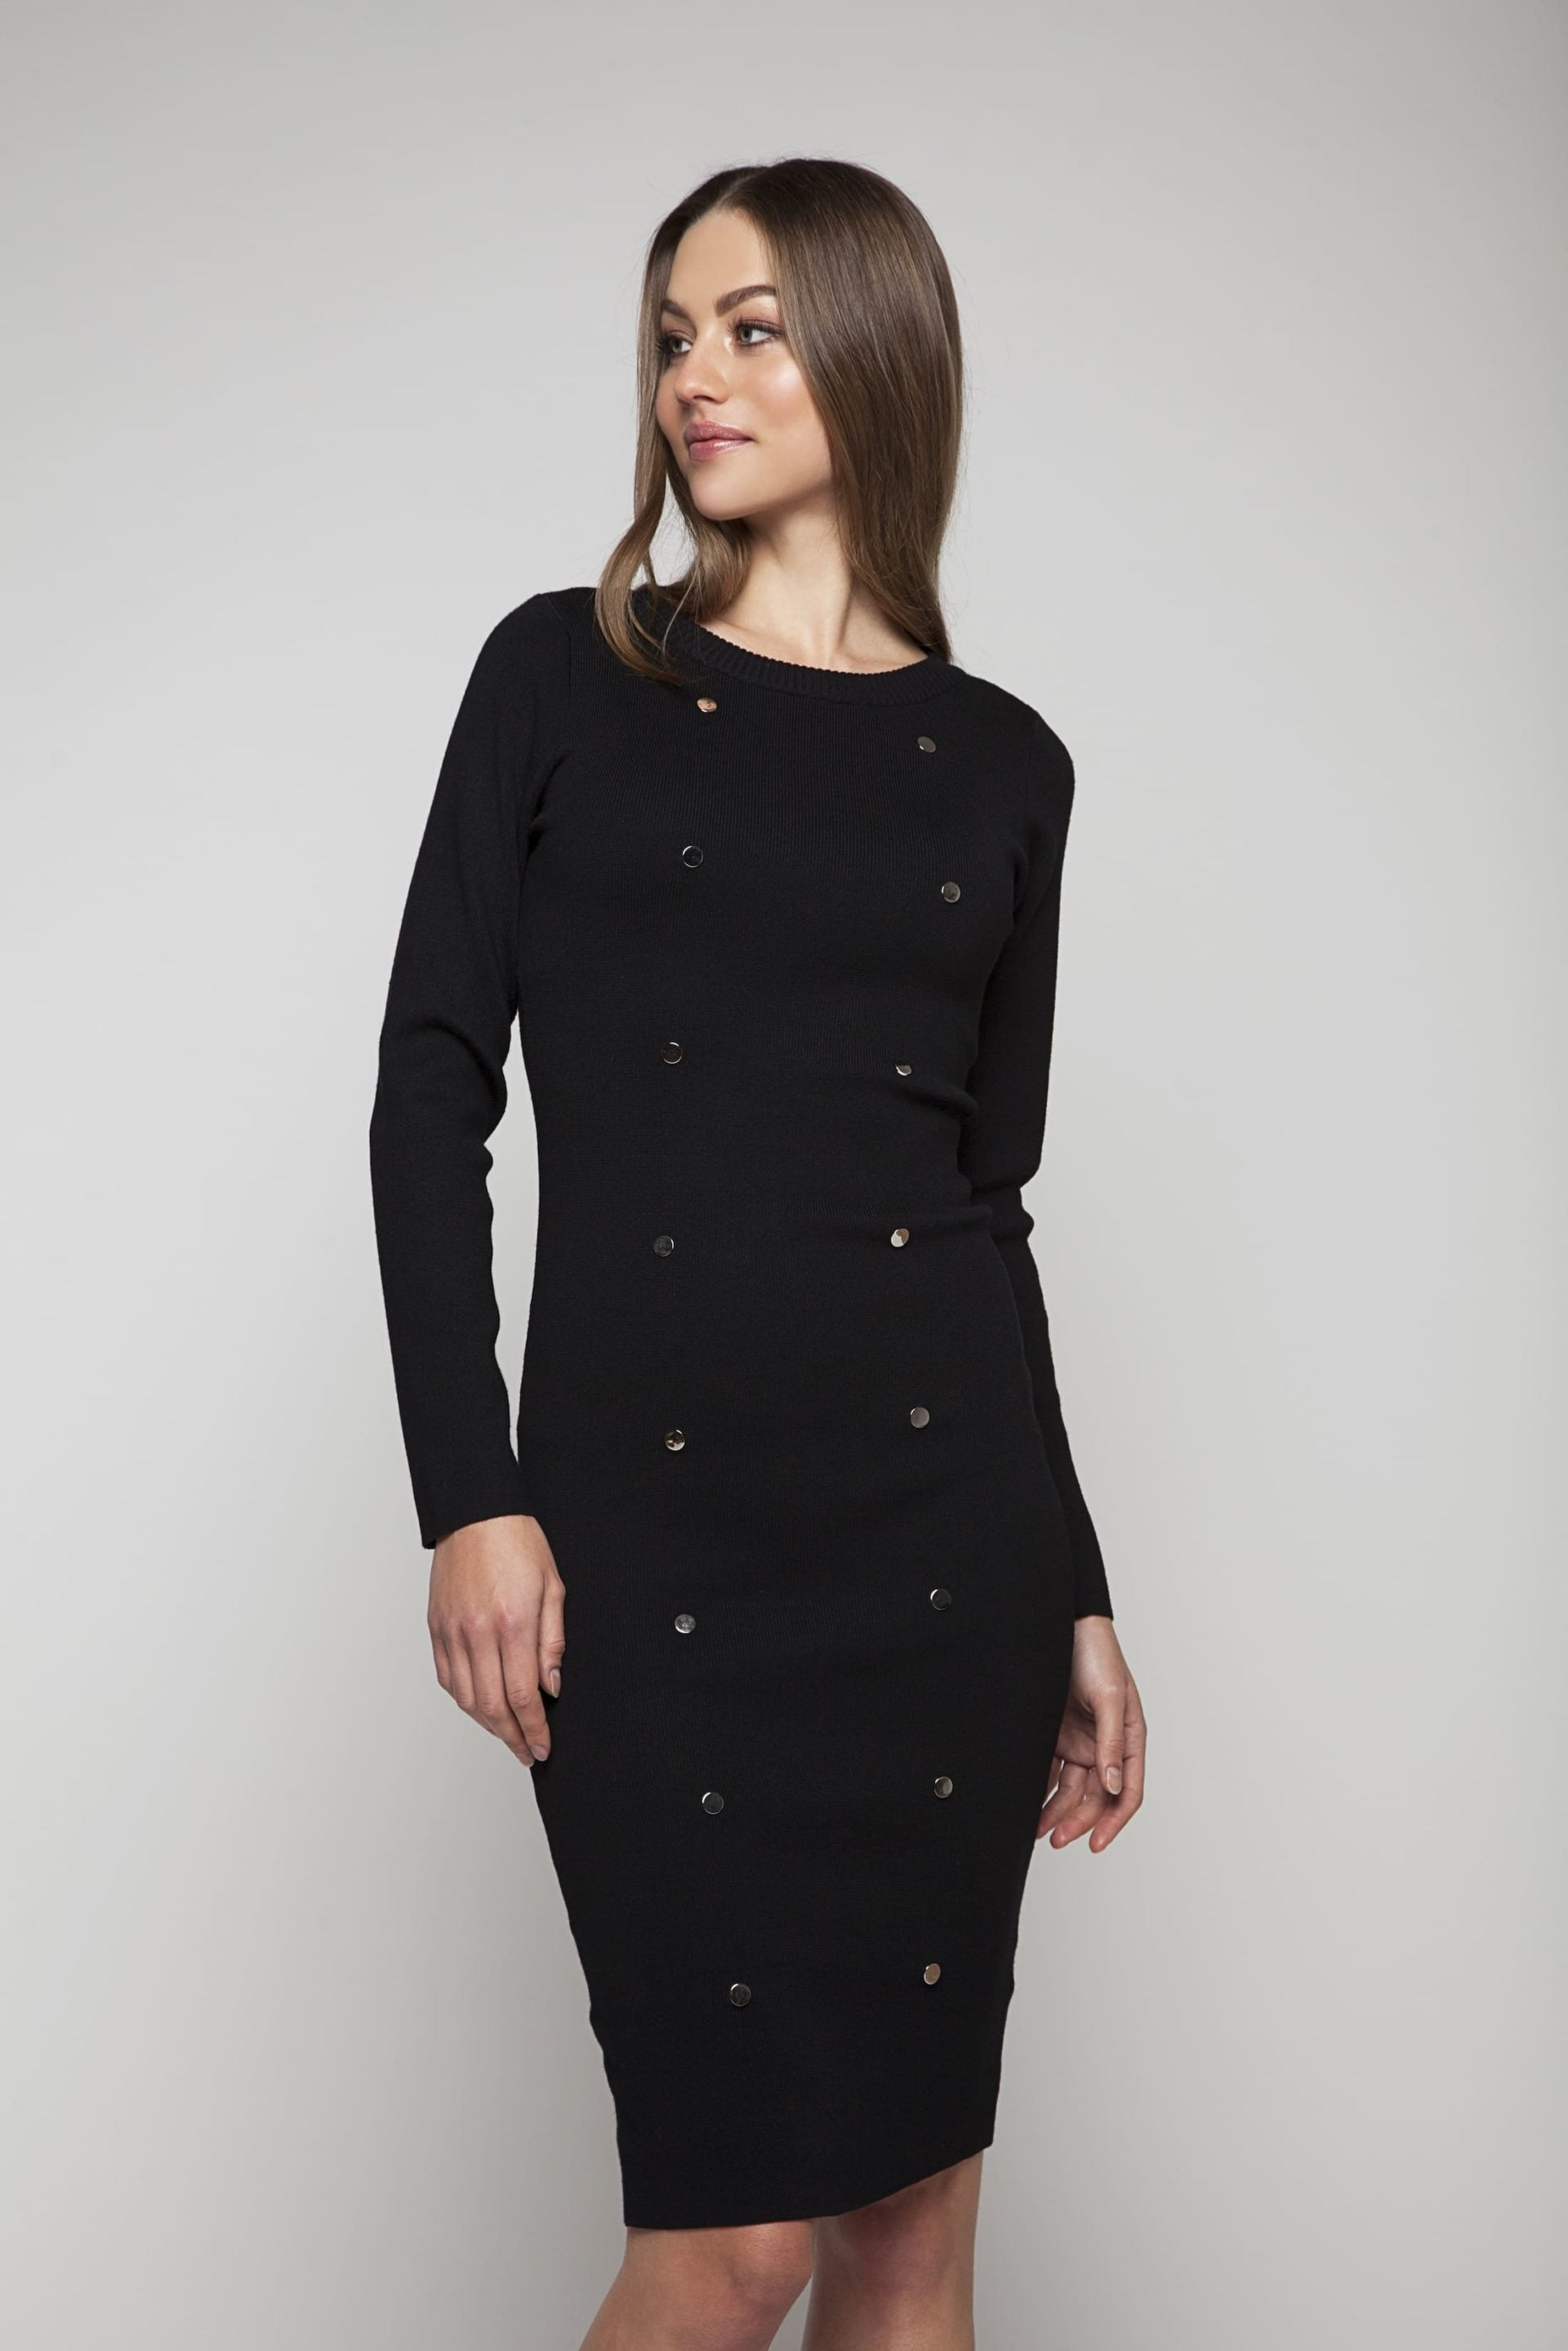 Knitted dress with silver buttons and waistband